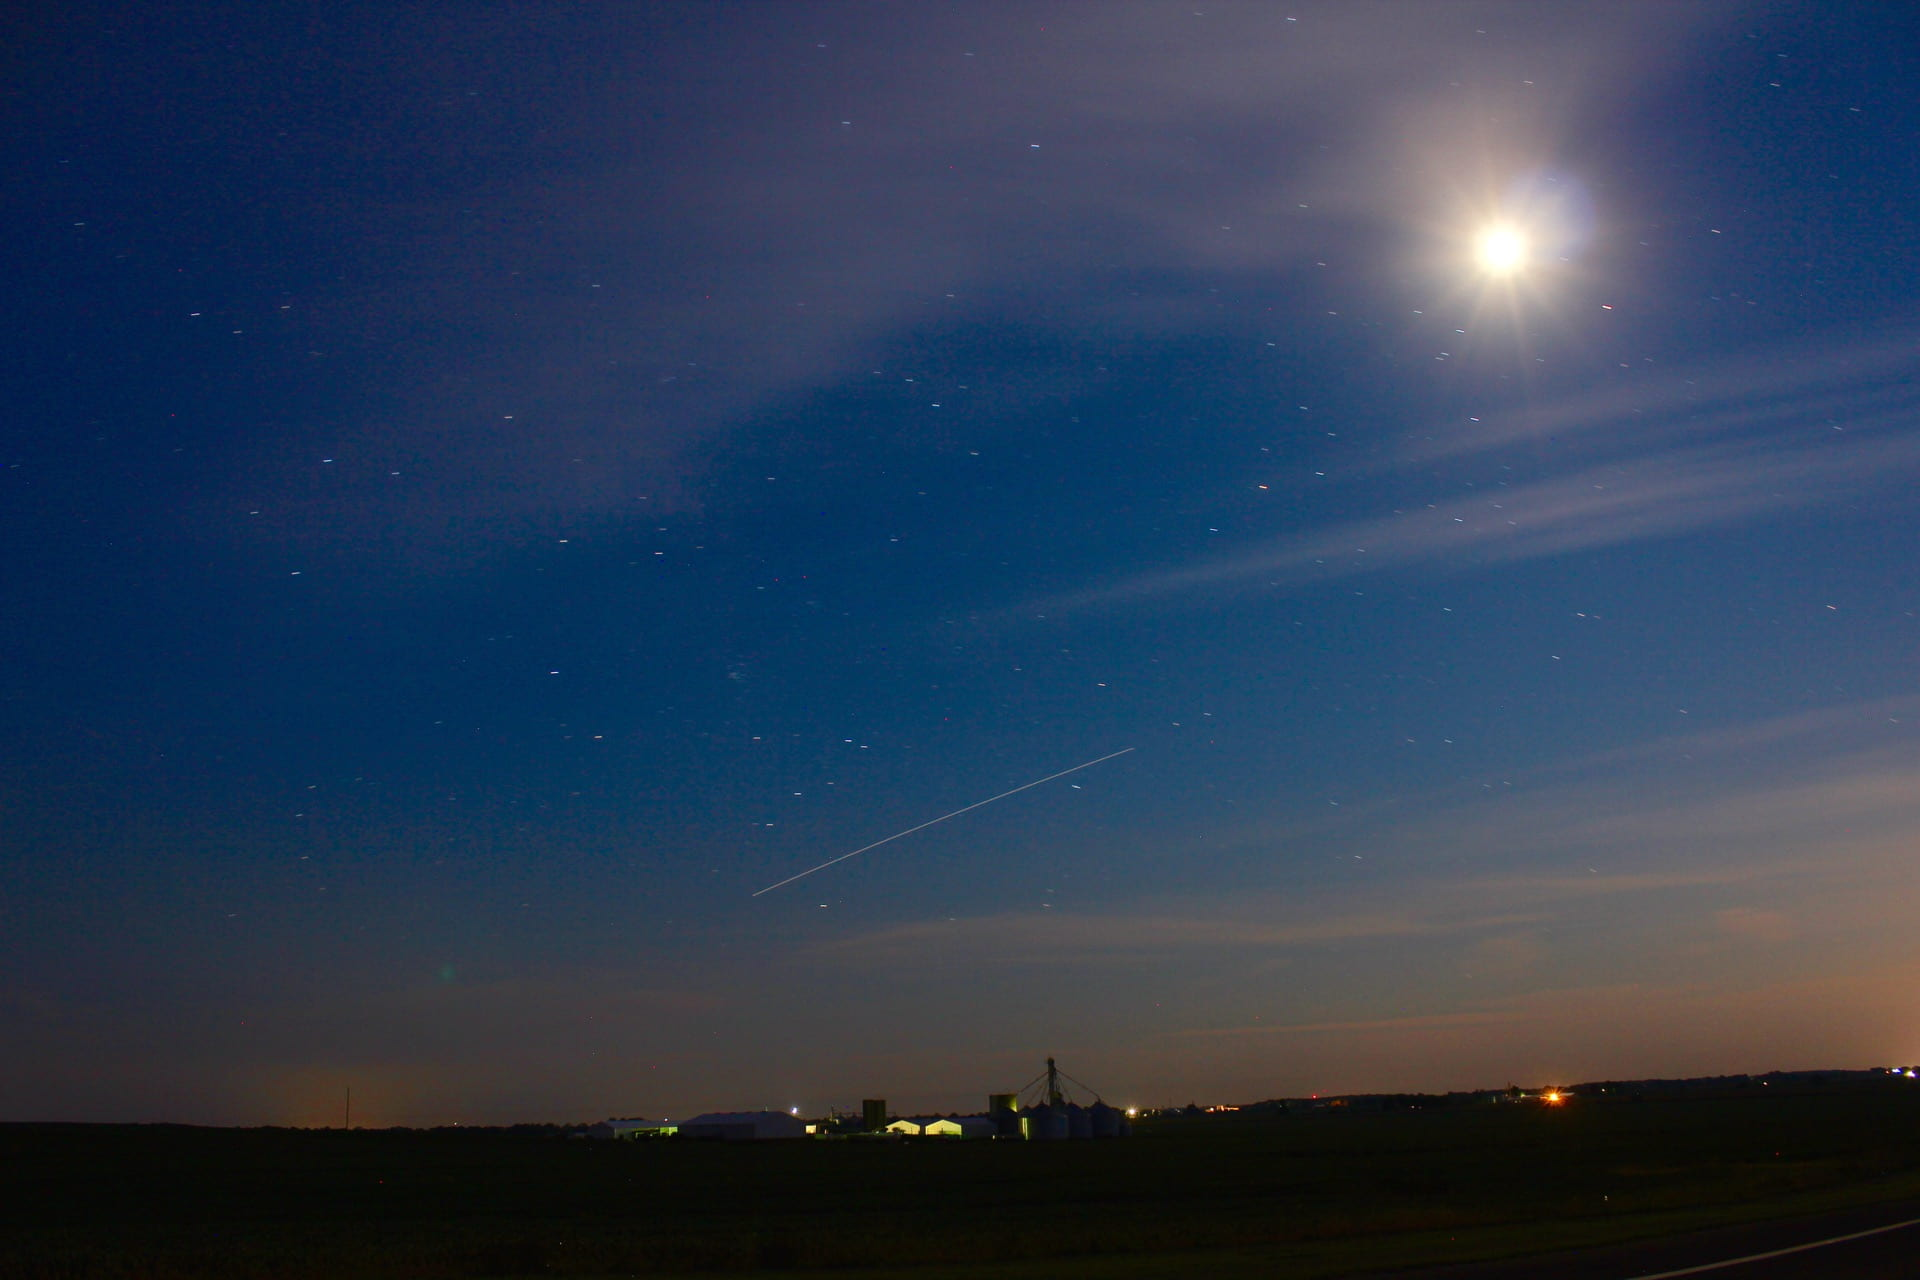 International Space Station is shown over a farm. The International Space Station (ISS) is shown as a streak in the sky in the picture above. Join Dr. Tom Blaine to learn how to identify ISS and constellations in the night sky.